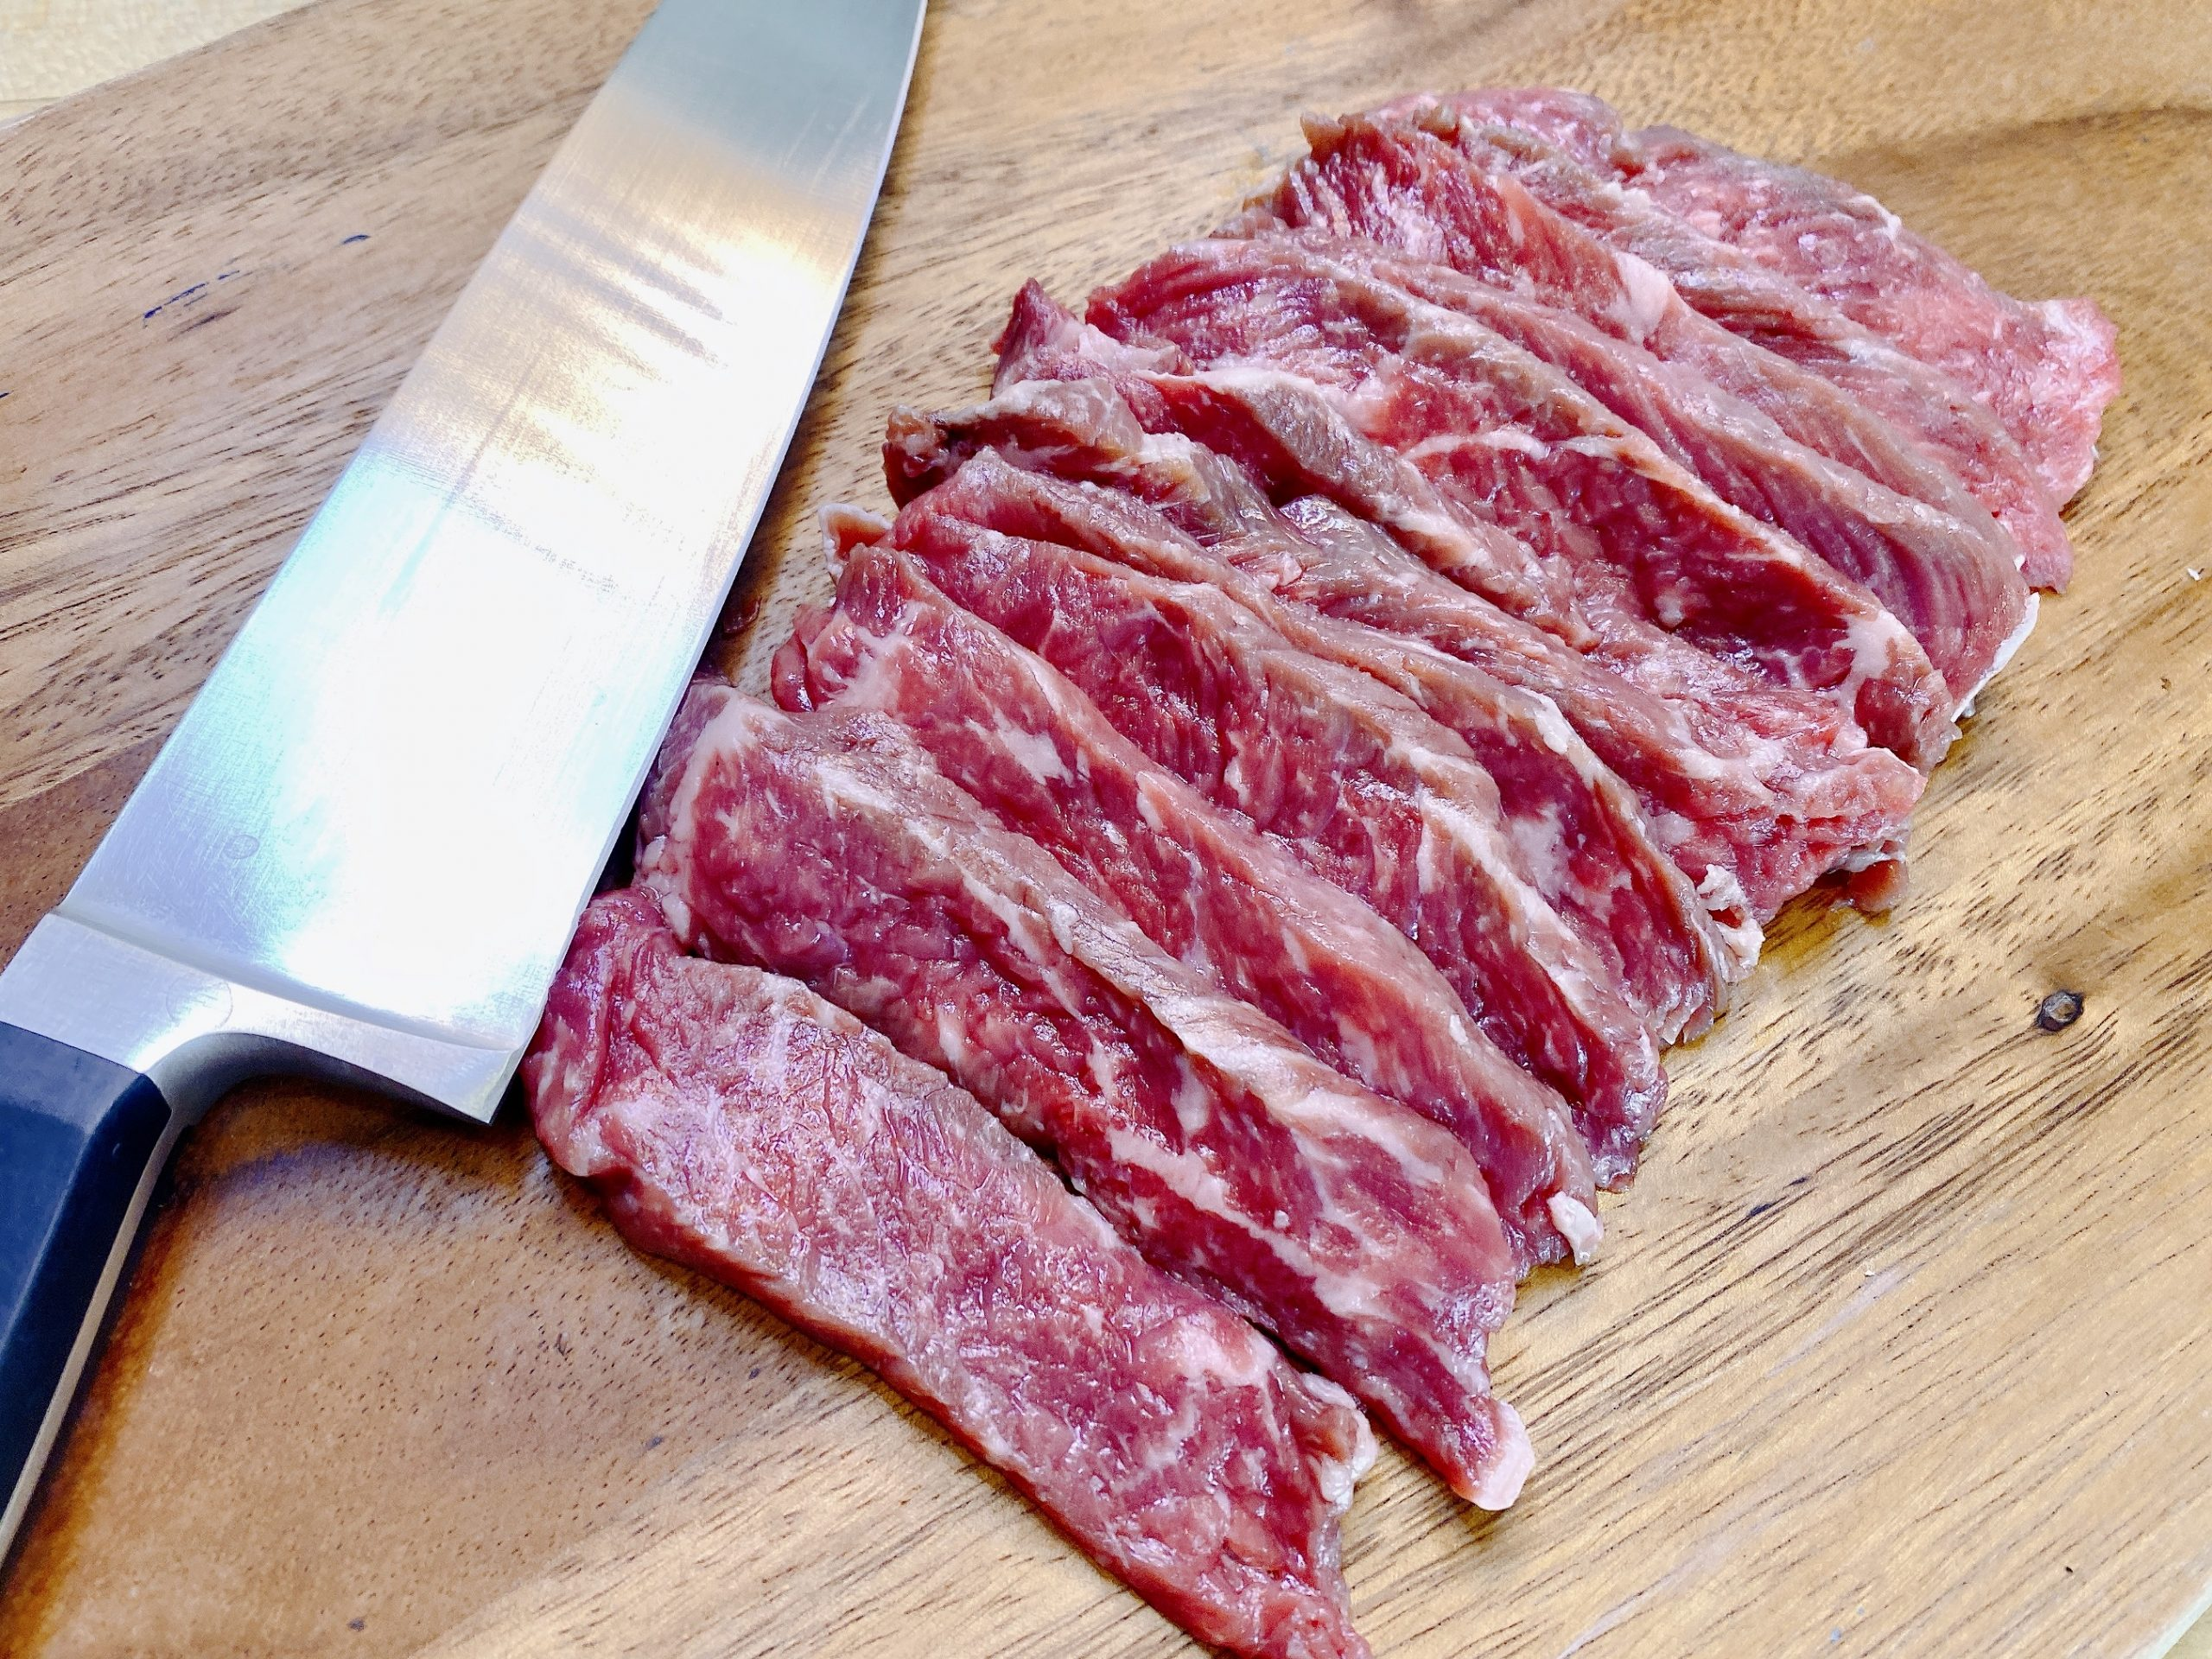 sliced raw steak with knife on cutting board